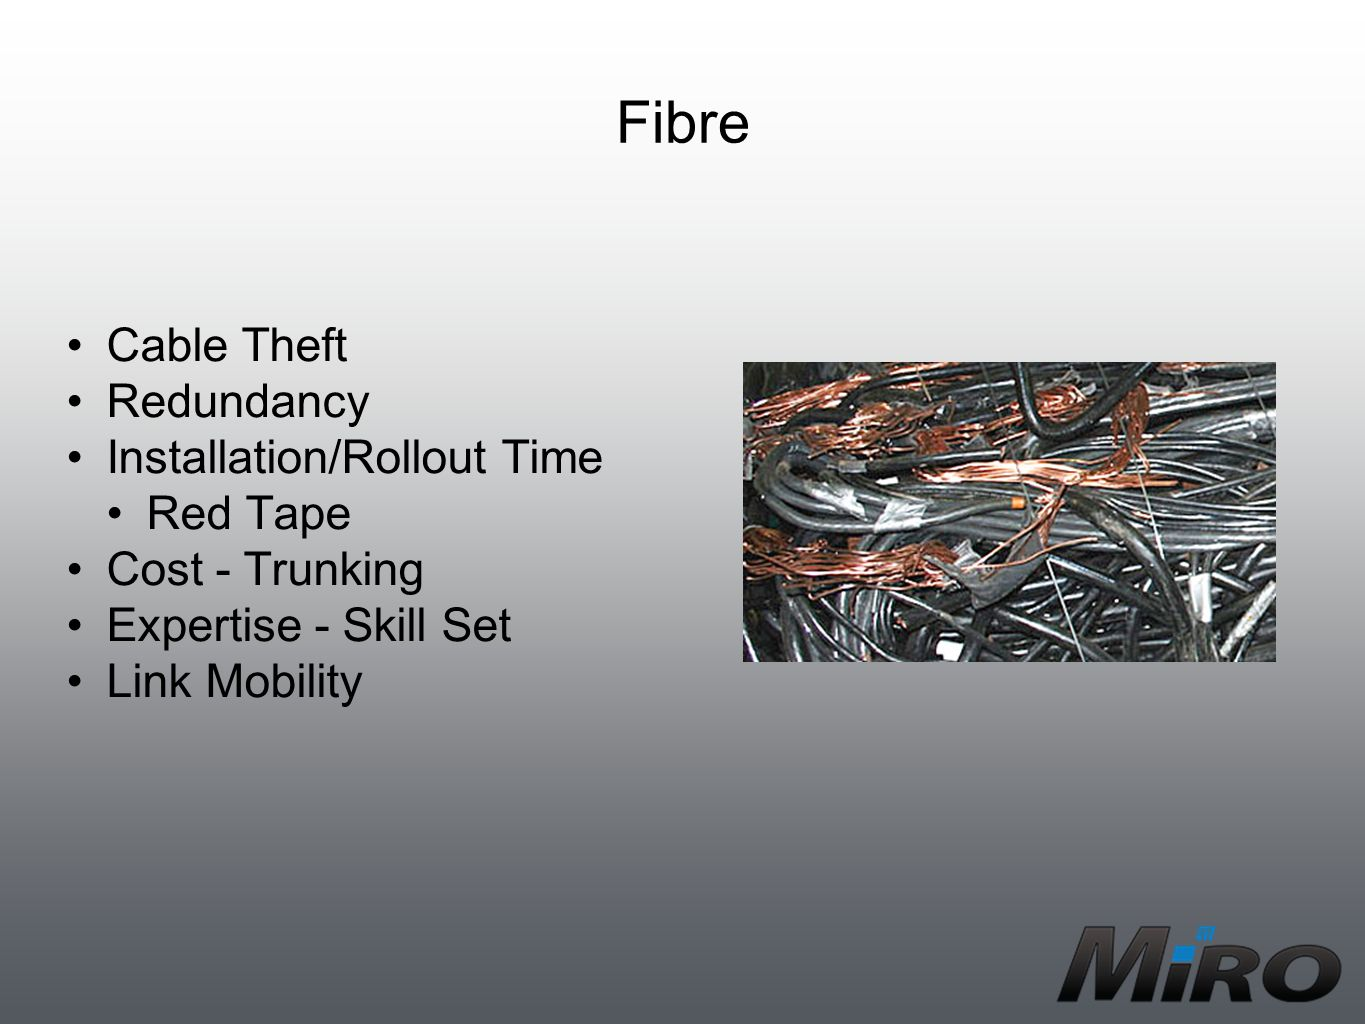 Fibre Cable Theft Redundancy Installation/Rollout Time Red Tape Cost - Trunking Expertise - Skill Set Link Mobility